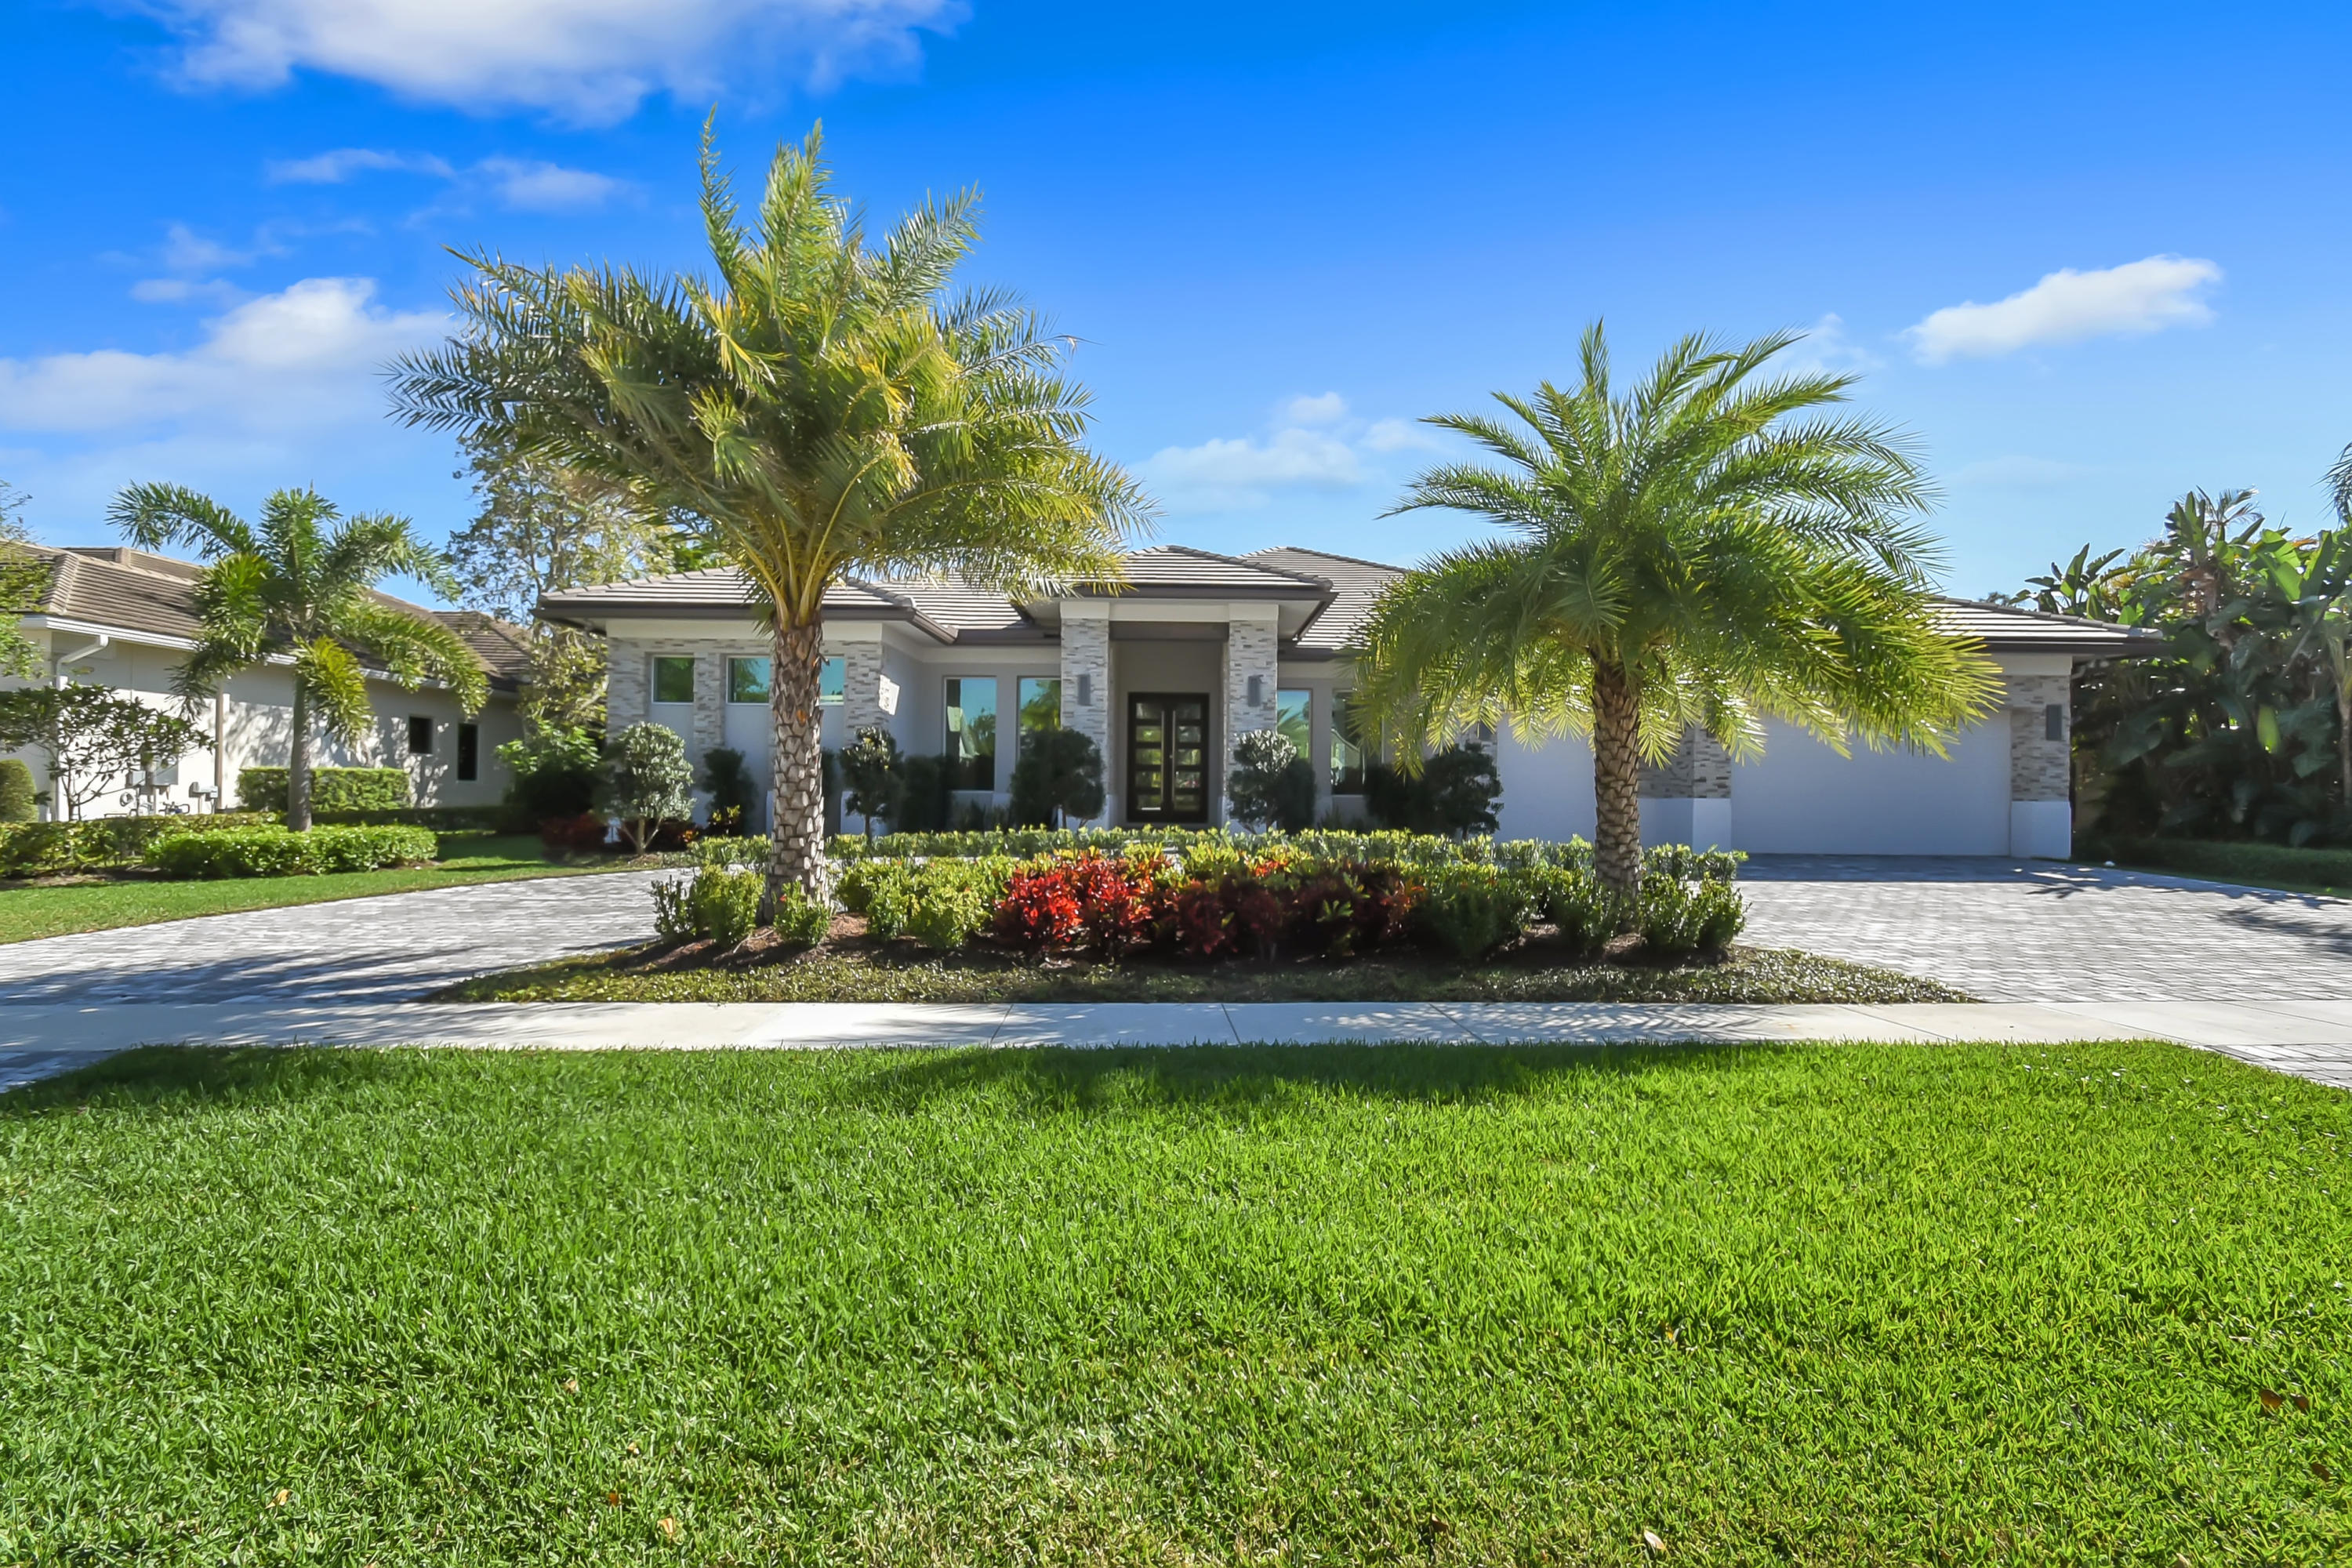 Home for sale in Delaire Delray Beach Florida